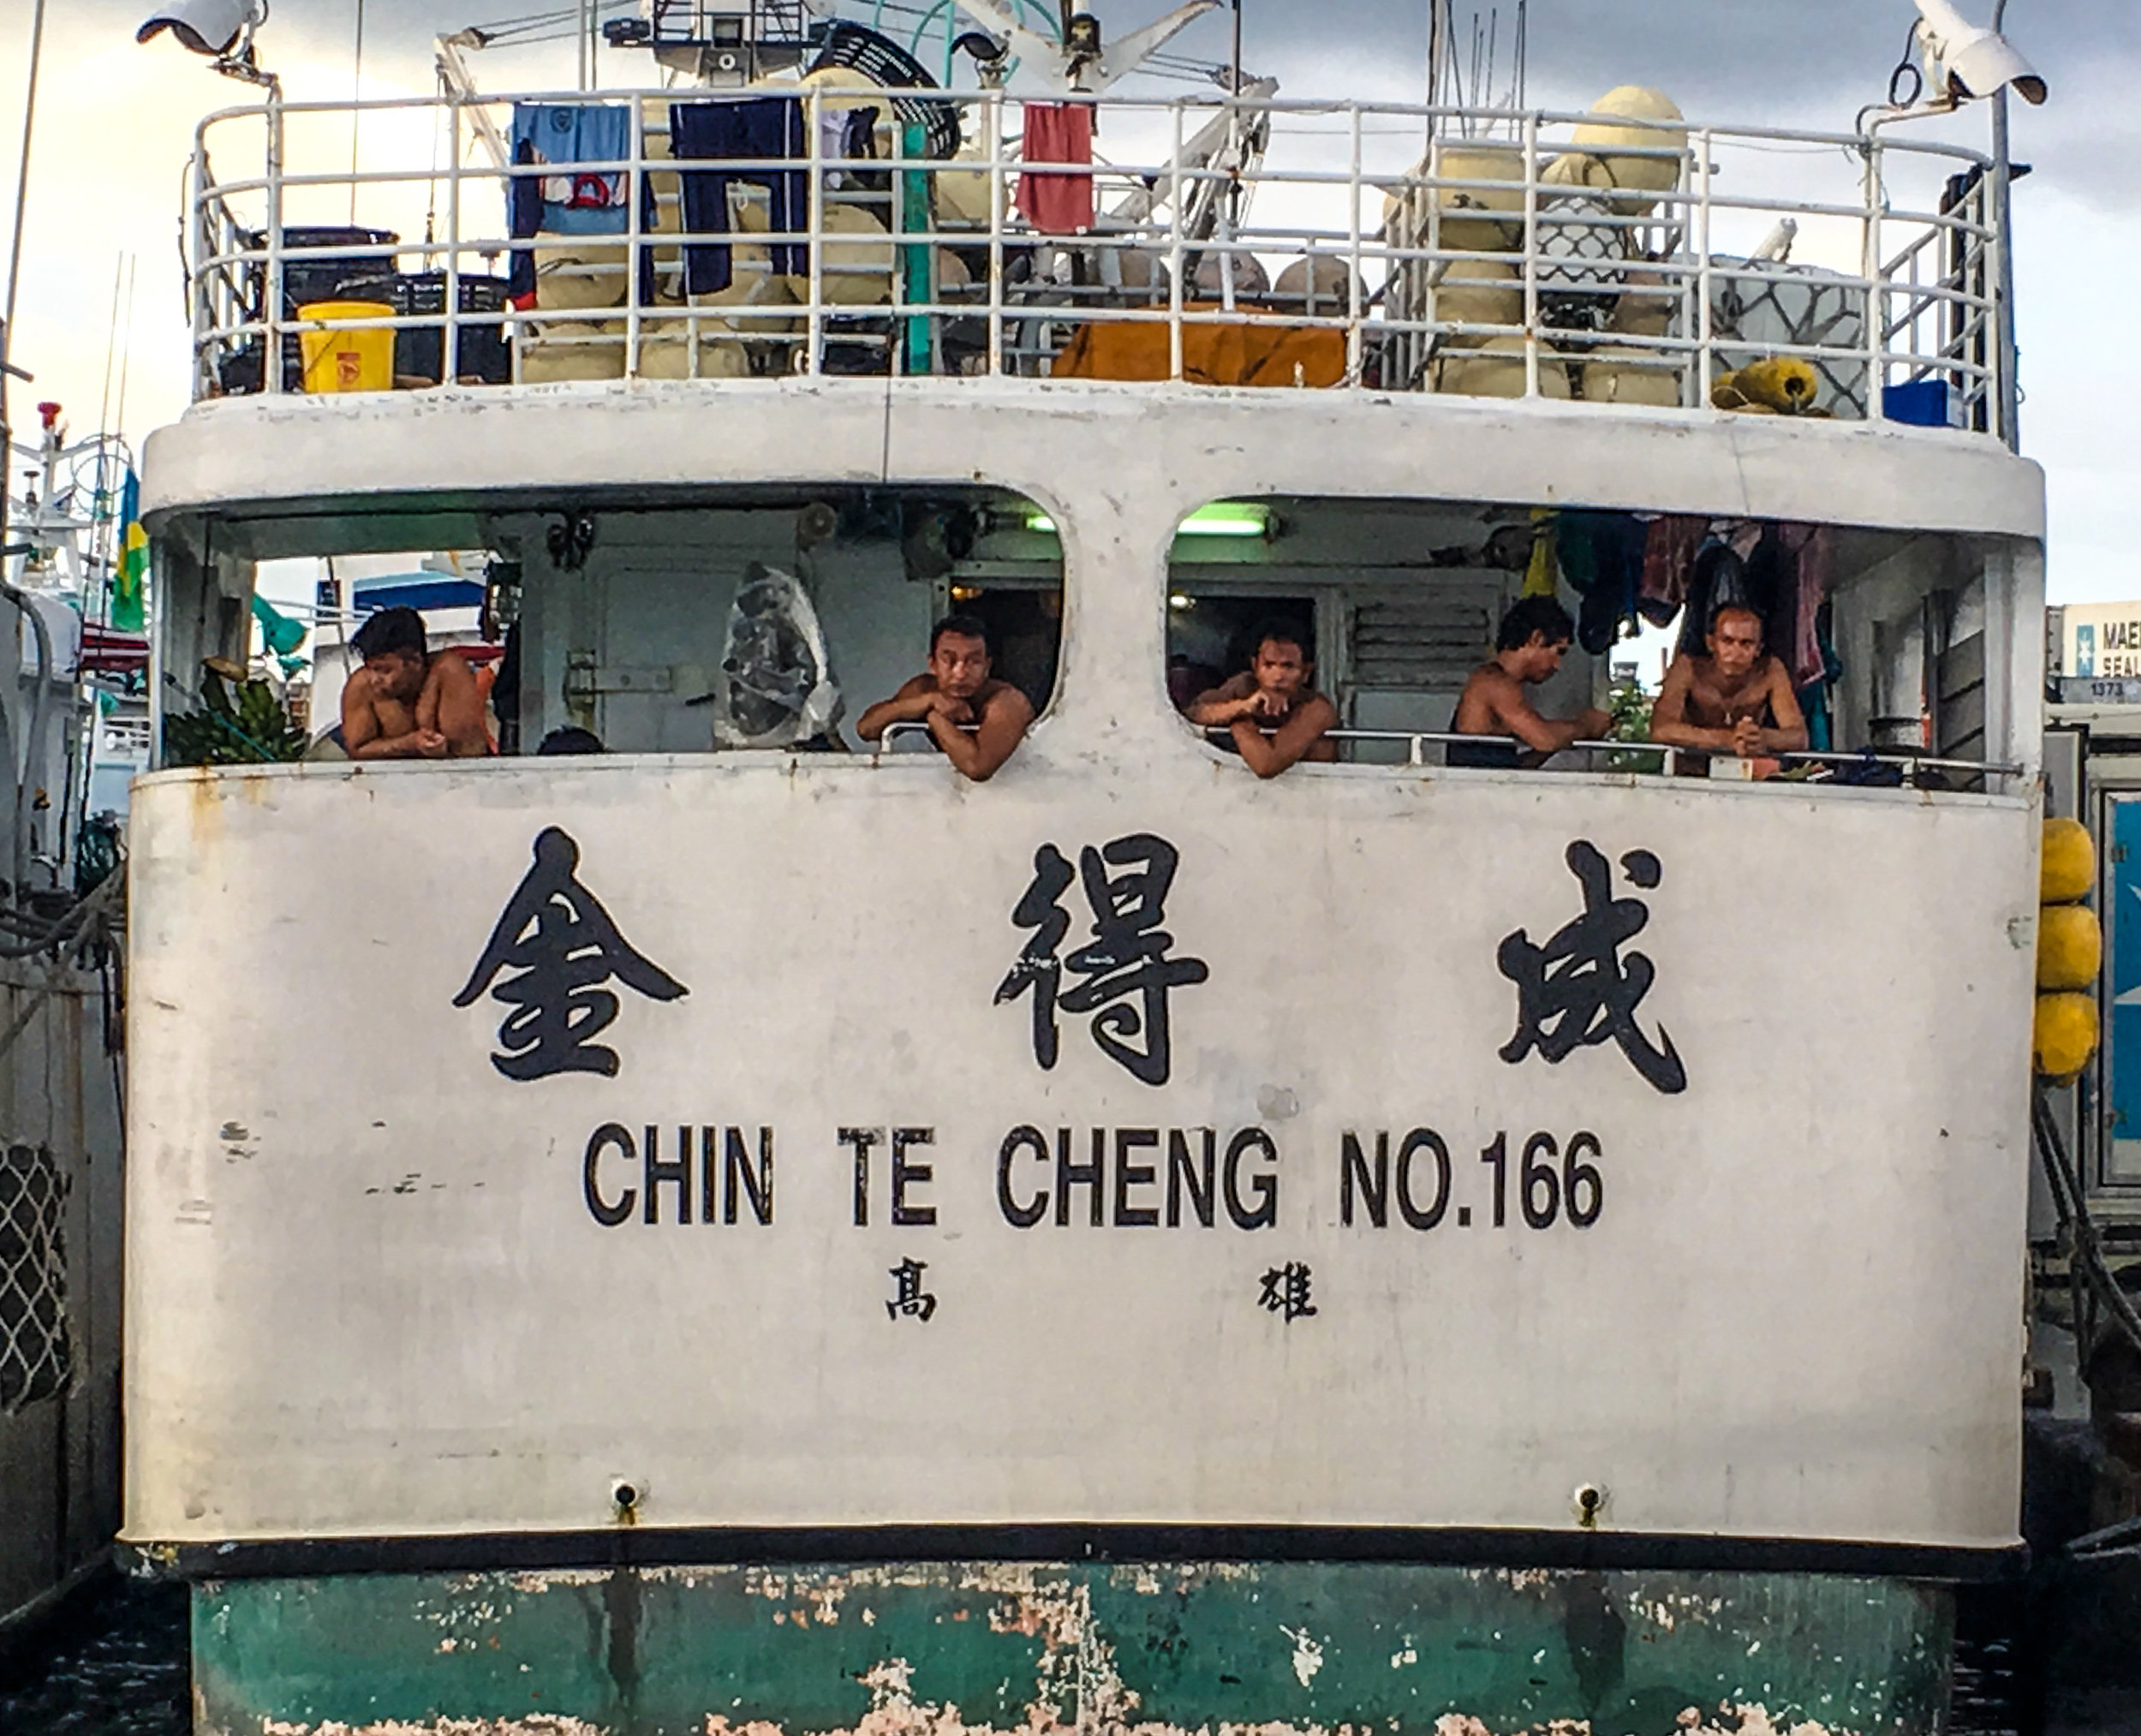 Bored crew hanging out on a Taiwanese longliner (not the one involved in this story)